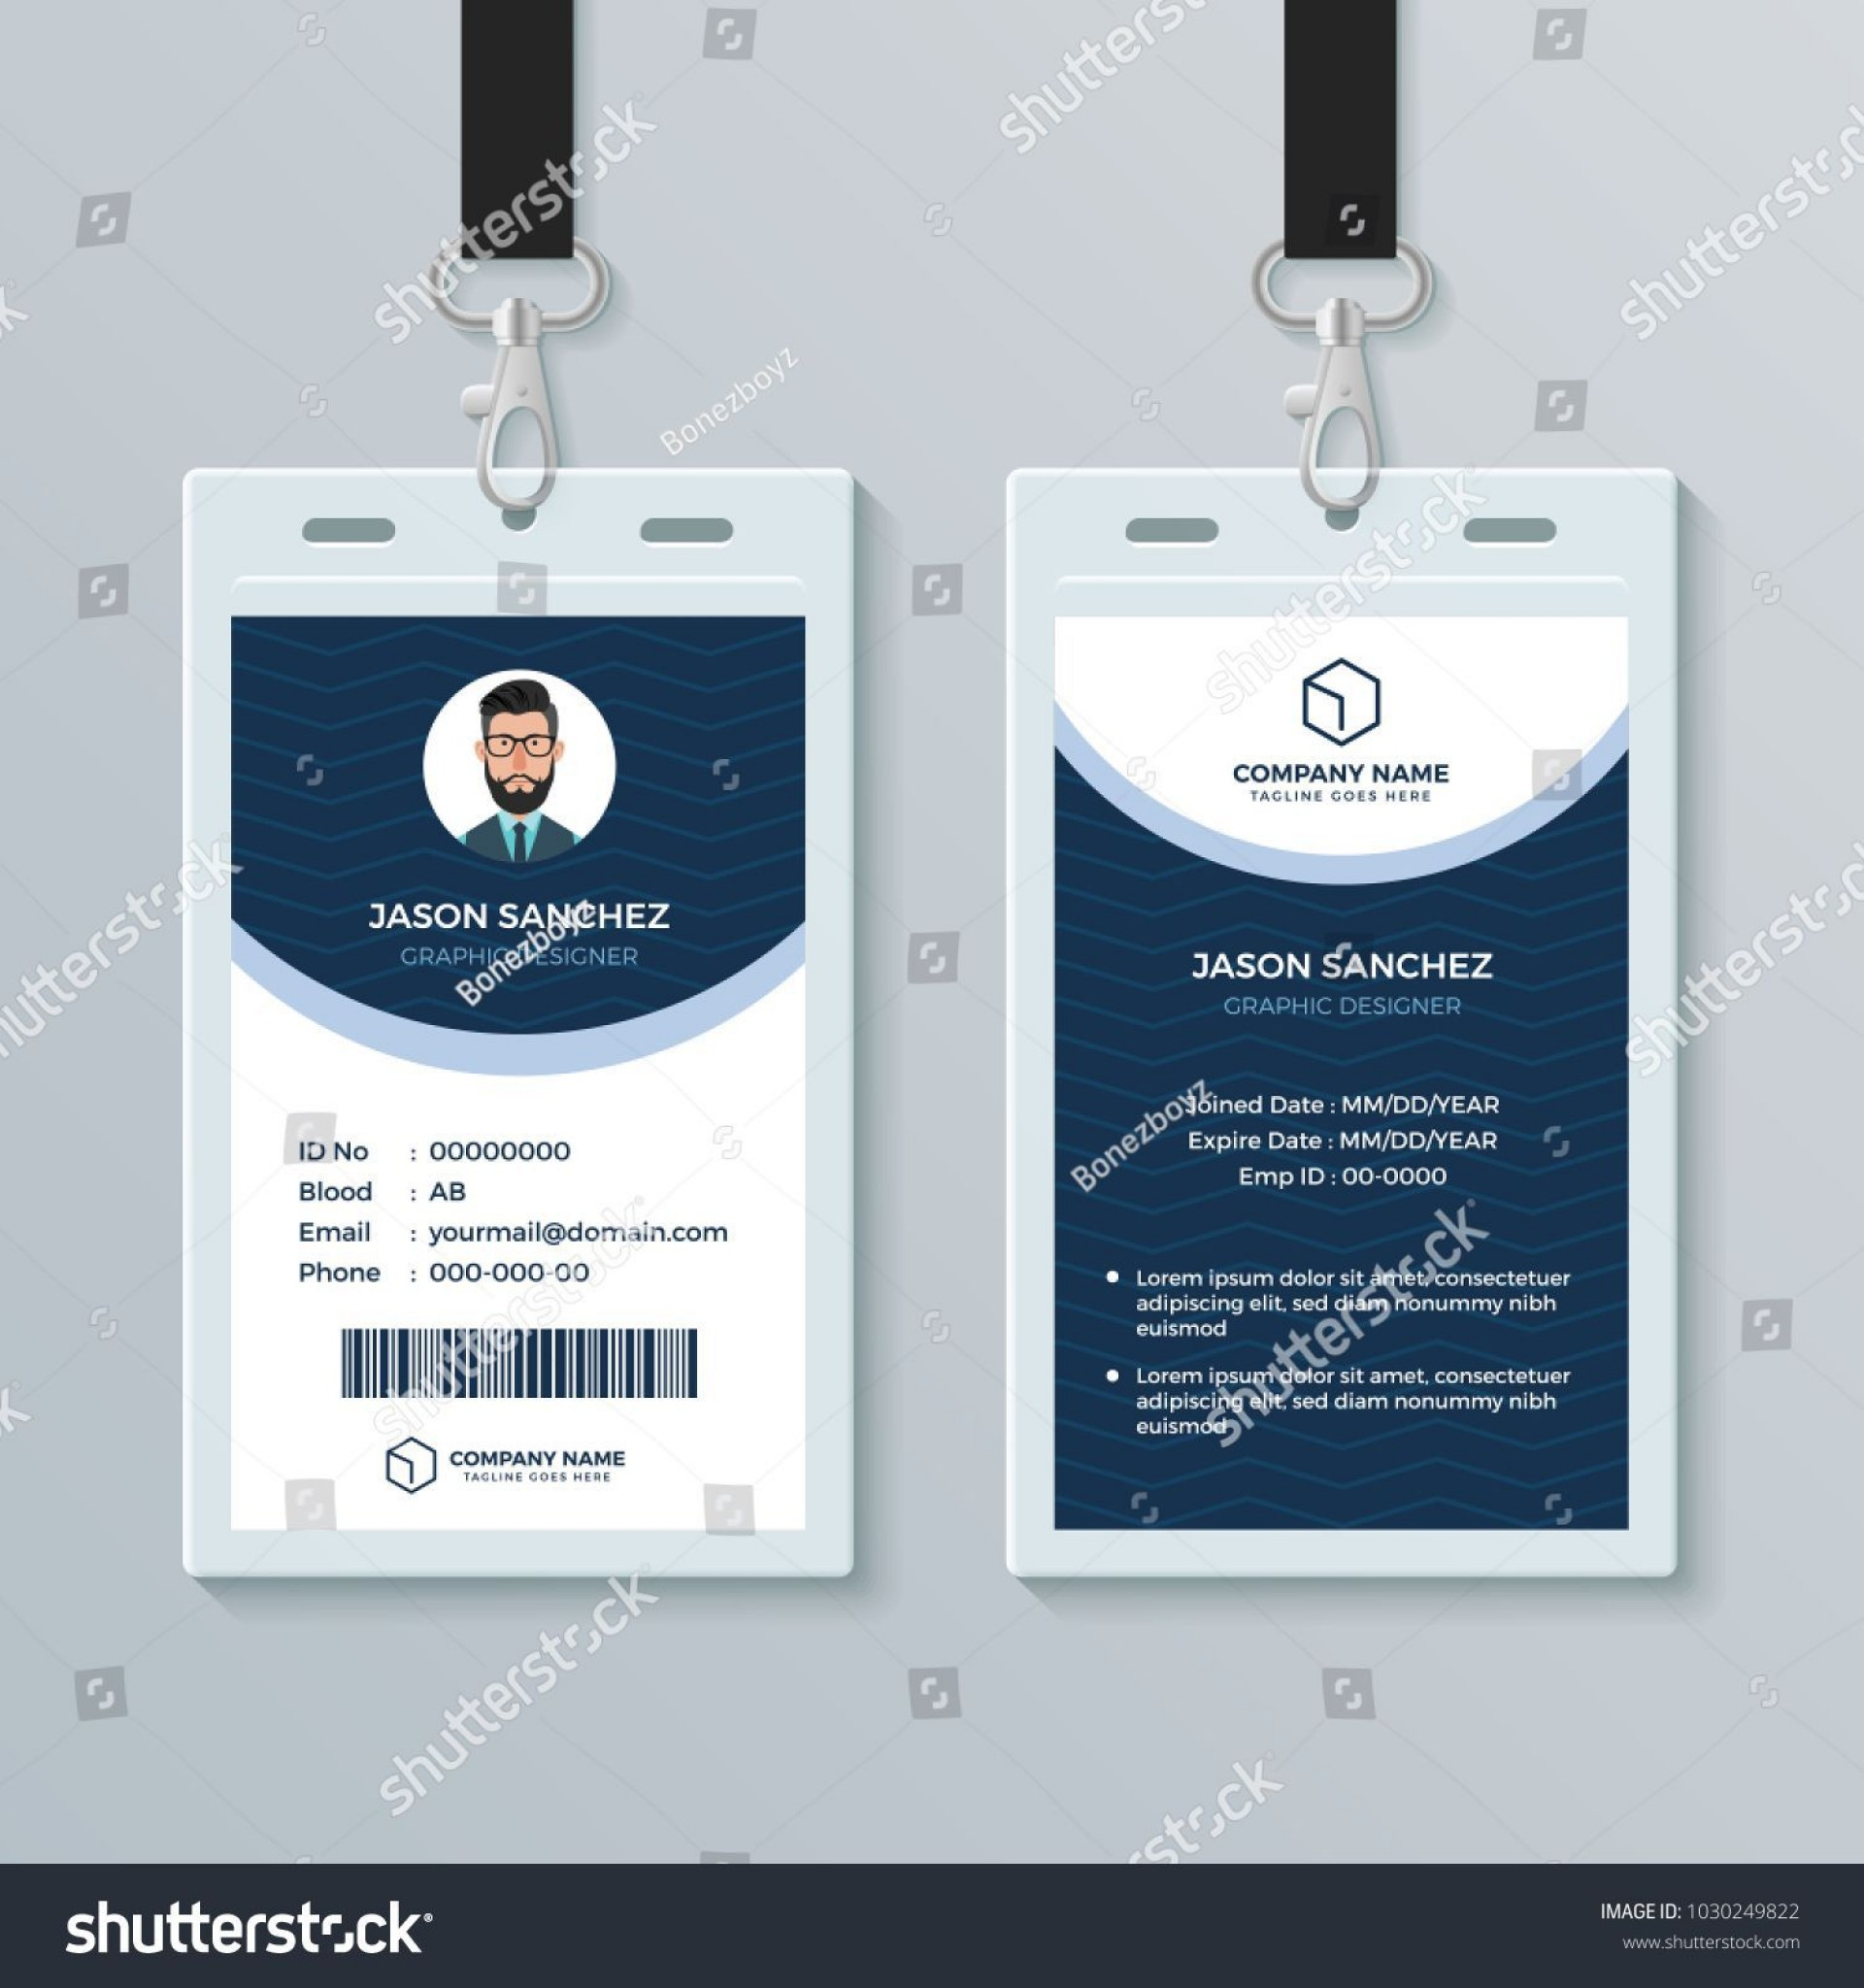 005 Amazing Employee Id Badge Template Highest Clarity  Avery Card Free Download Word1920